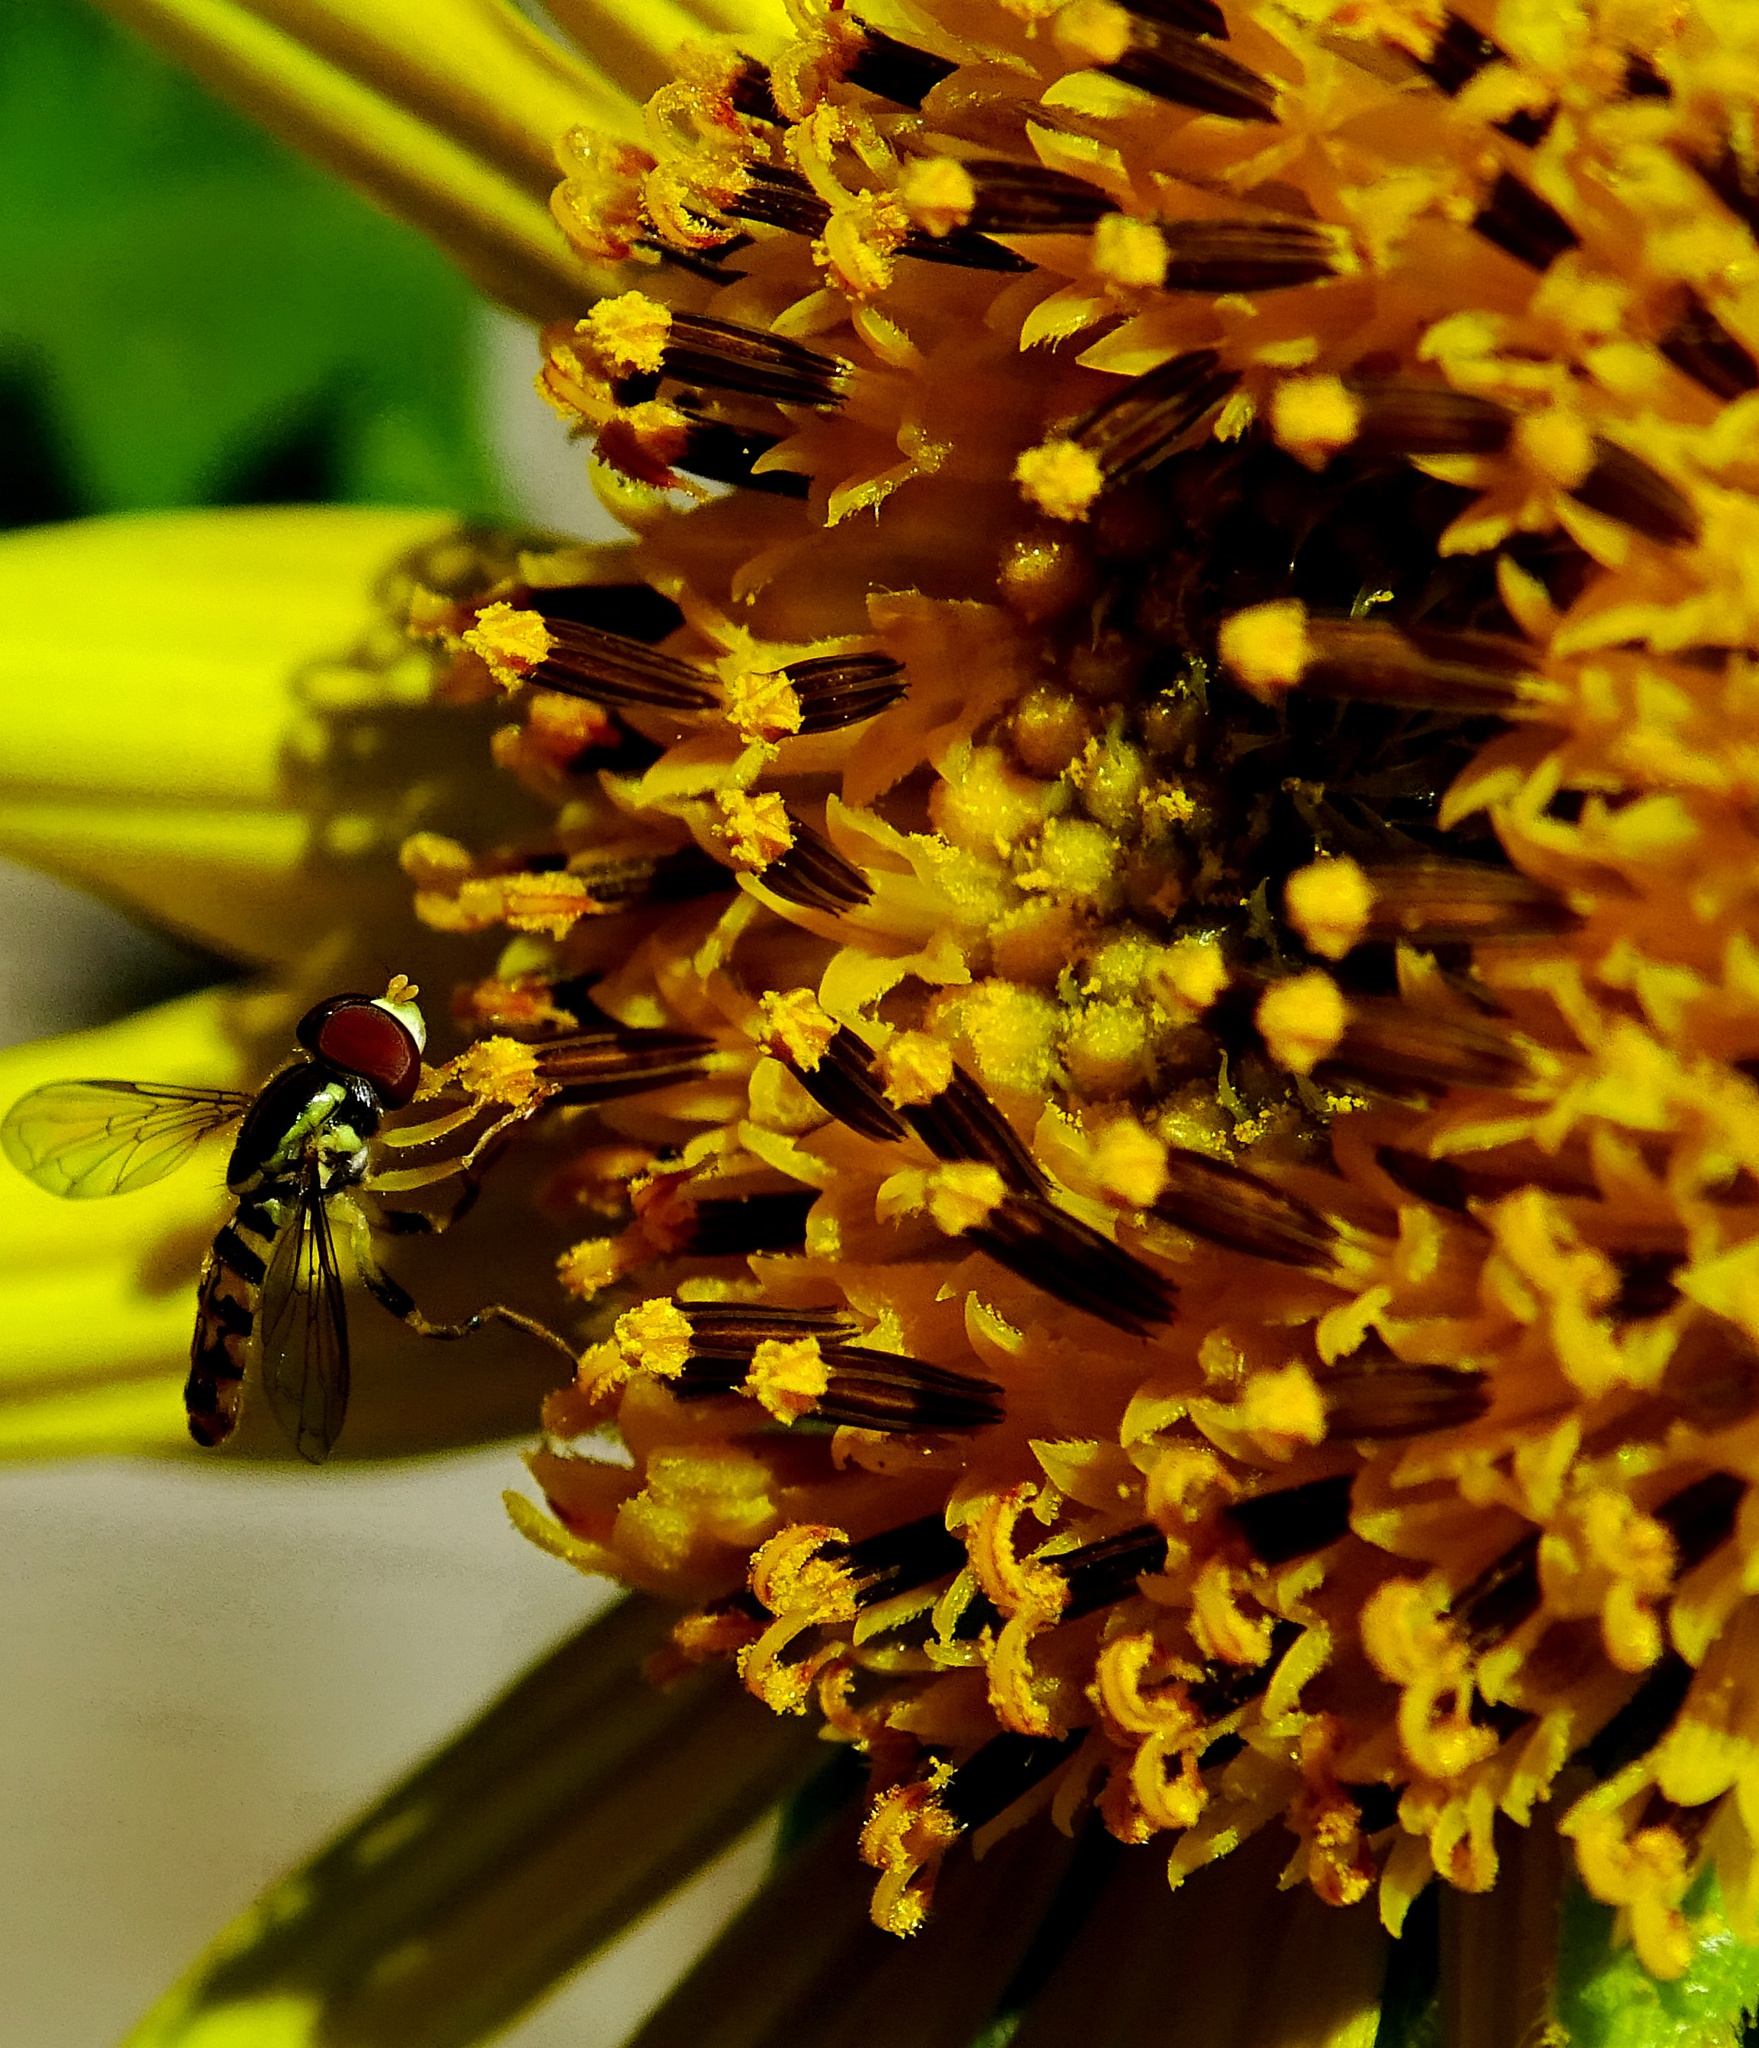 Hoverfly and Sunflower by paulette.king